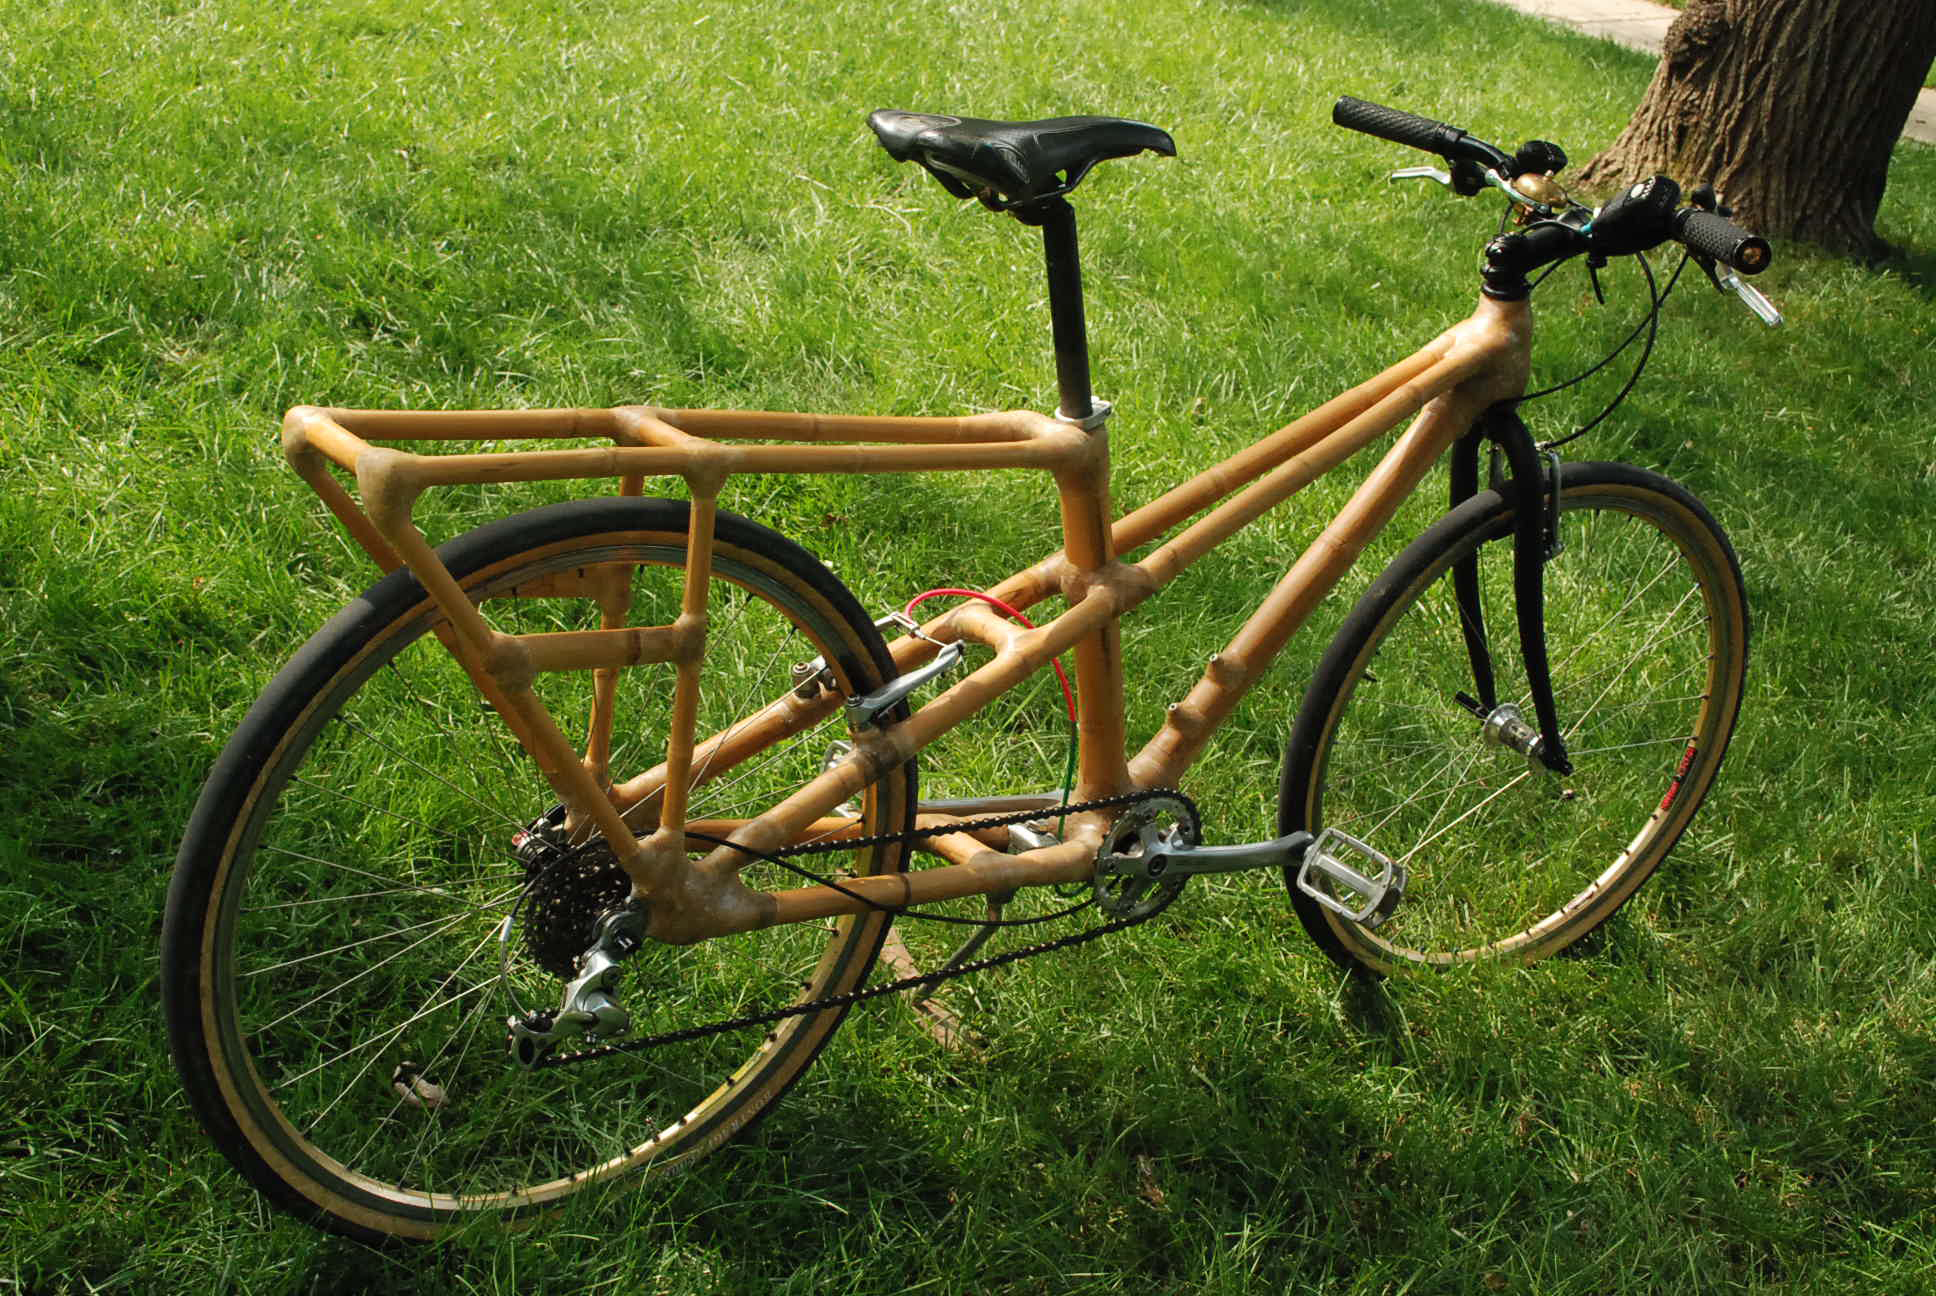 bamboo bike rear view photo